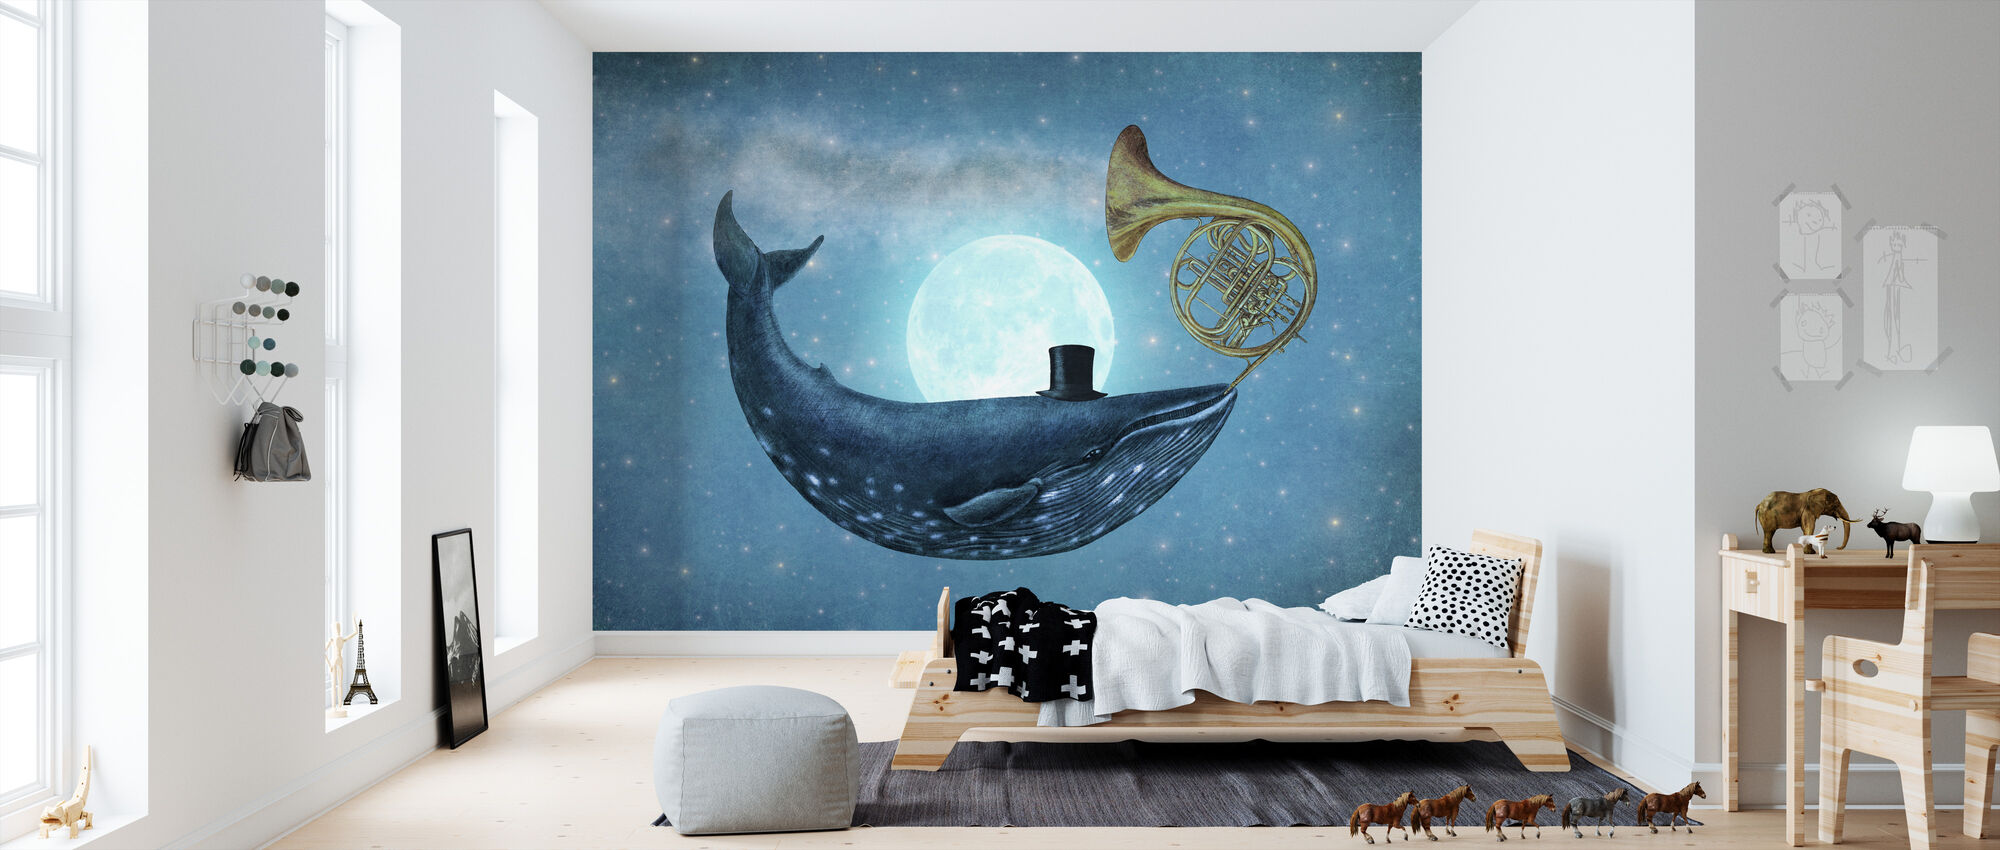 Cloud Maker landscape - Wallpaper - Kids Room